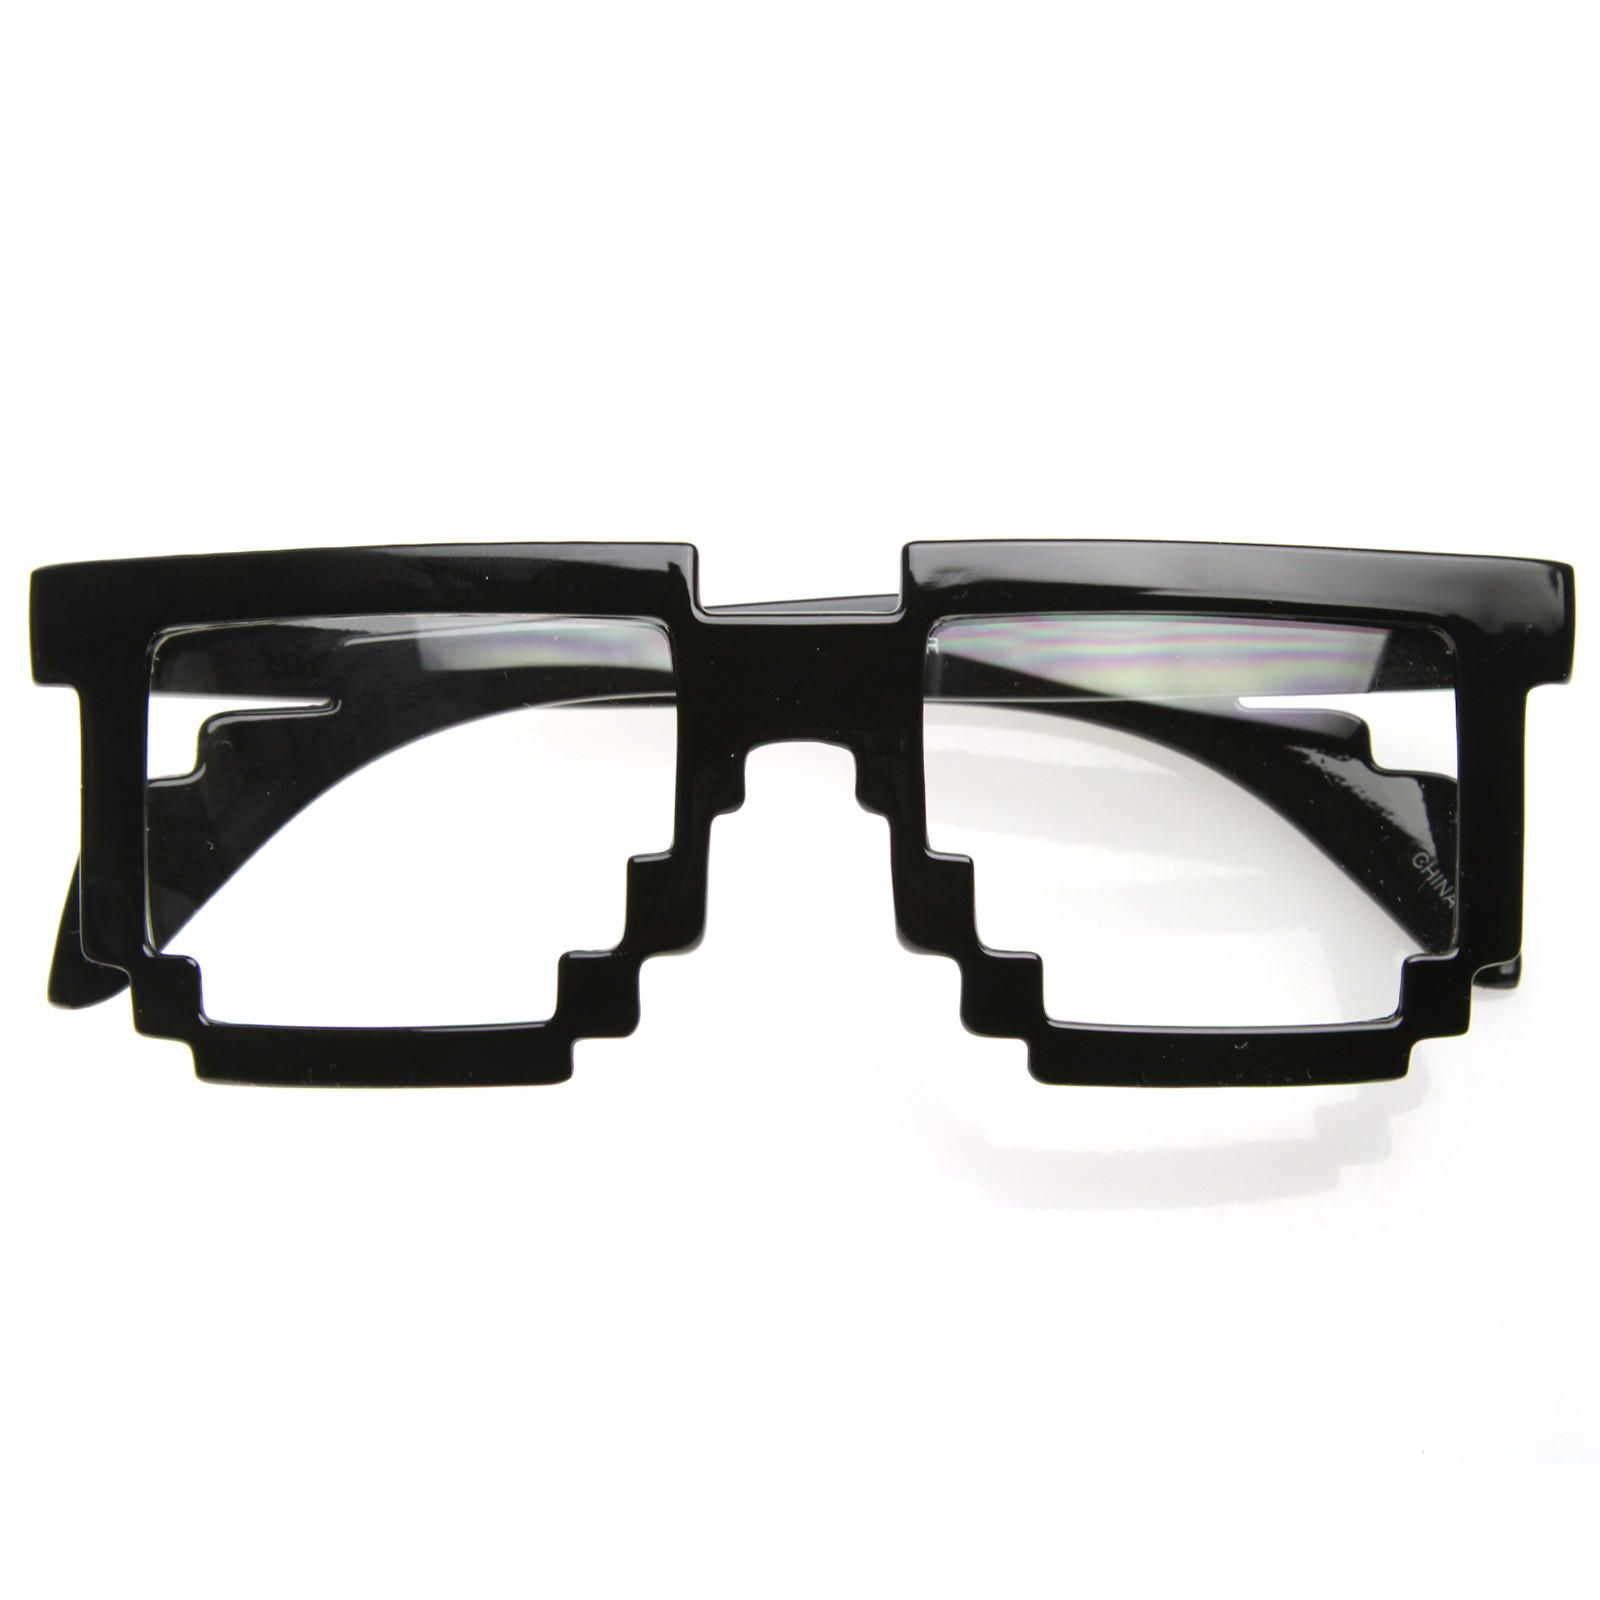 dc65925f380 Cool Hipster 8-Bit Gamer Nerd Geek Glasses 8537 from zeroUV. Saved to  Everything.